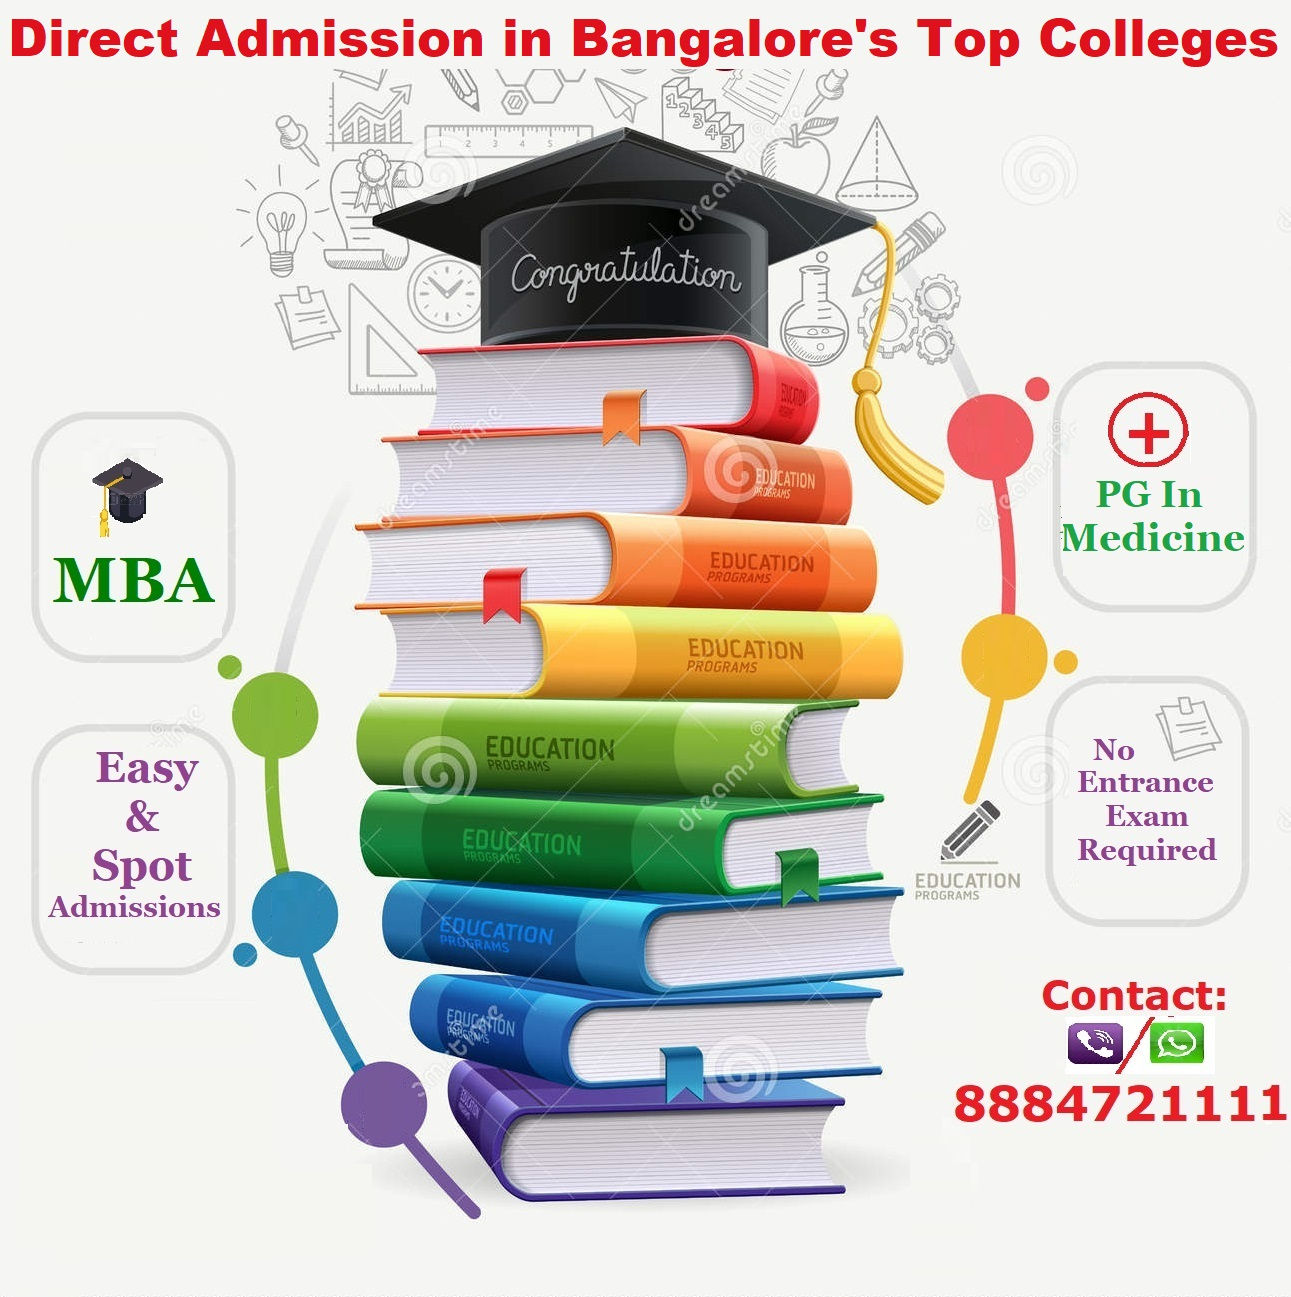 Image for Direct Admissions for MBA & PG IN MEDICINE